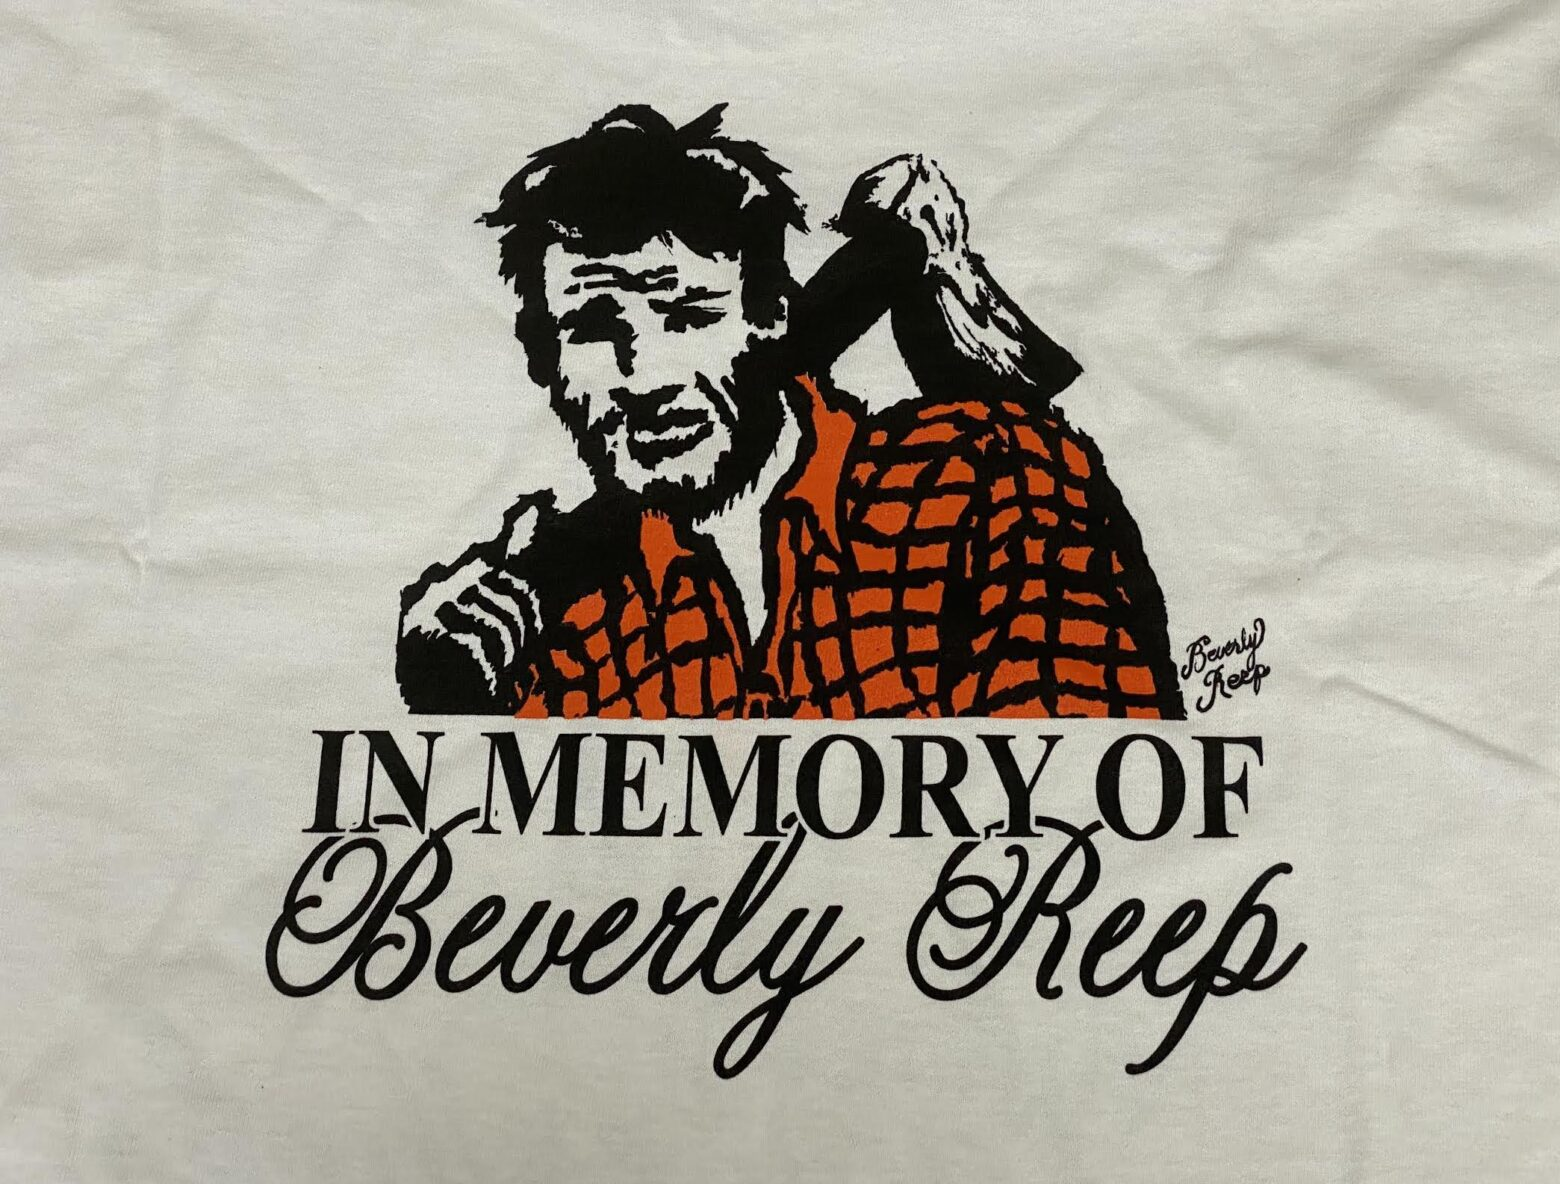 Lumberjack t-shirts featuring art of the late Beverly Reep now available for purchase as part of fundraising effort